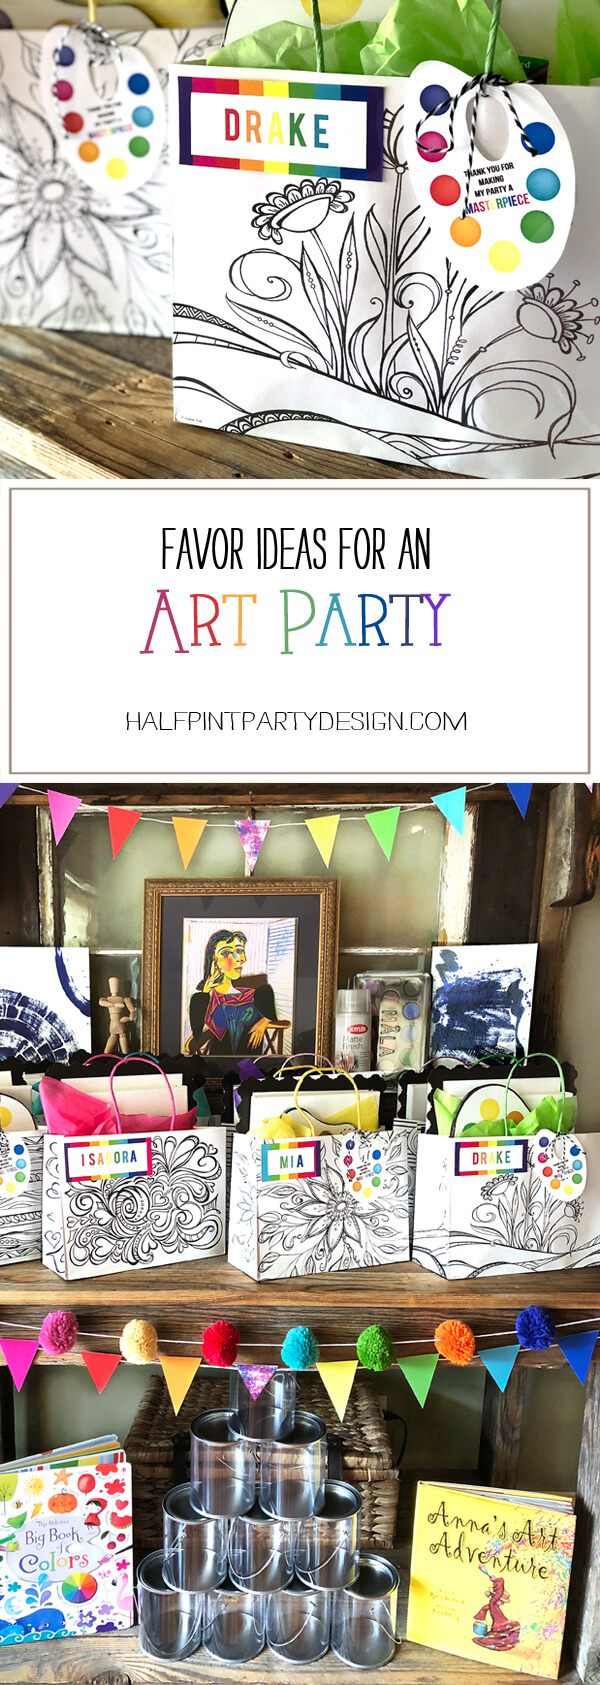 Pinterest Image of Rustic wood hutch set up as a favor table with art supplies, Black and white floral bags with rainbow name tags and a personalized paint palette tag as Art Party Favors